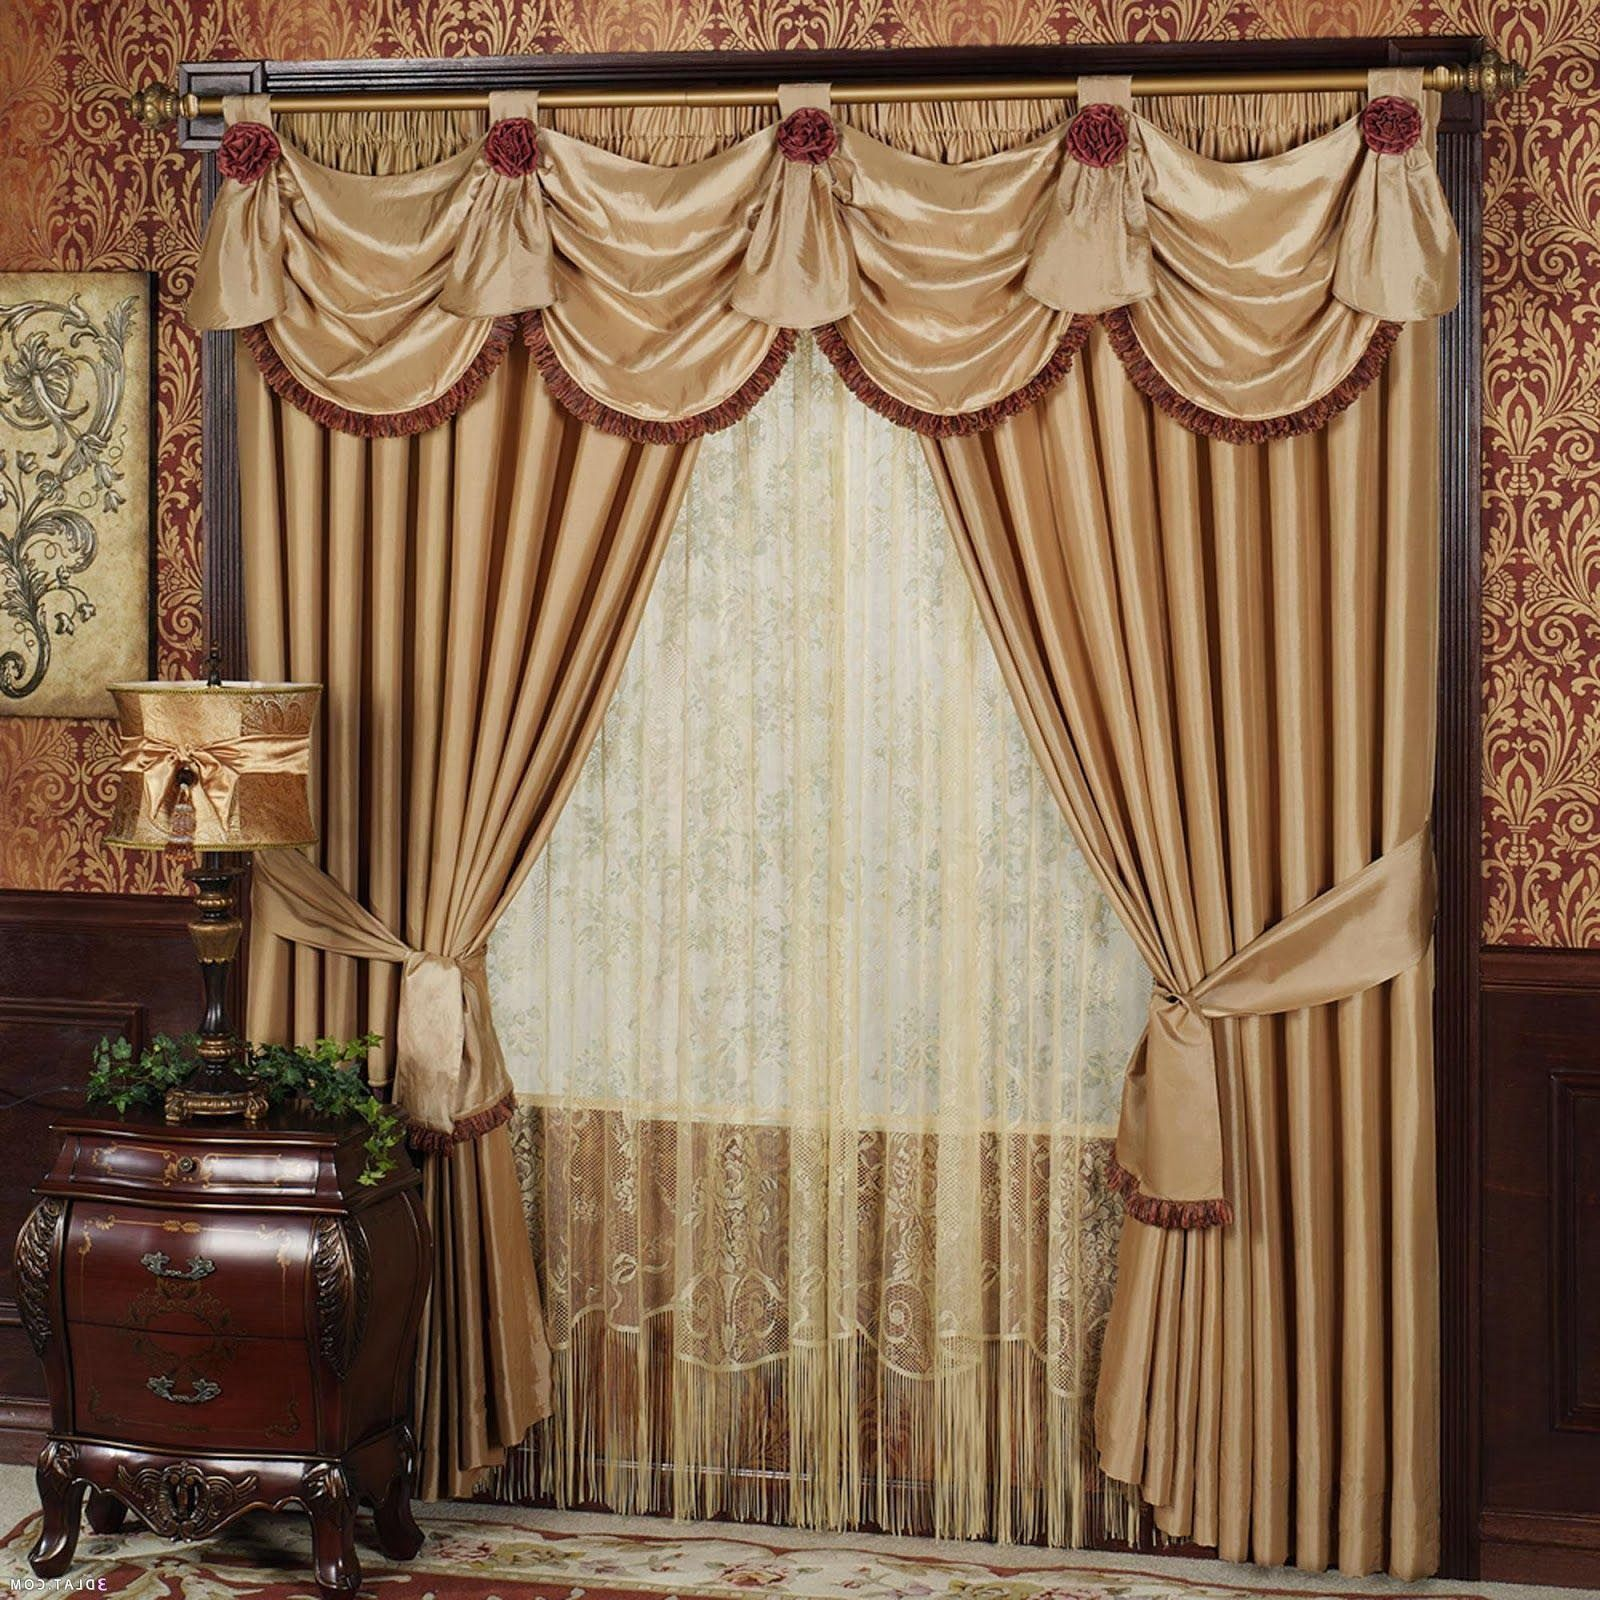 ideas curtain living for room decorating watch youtube